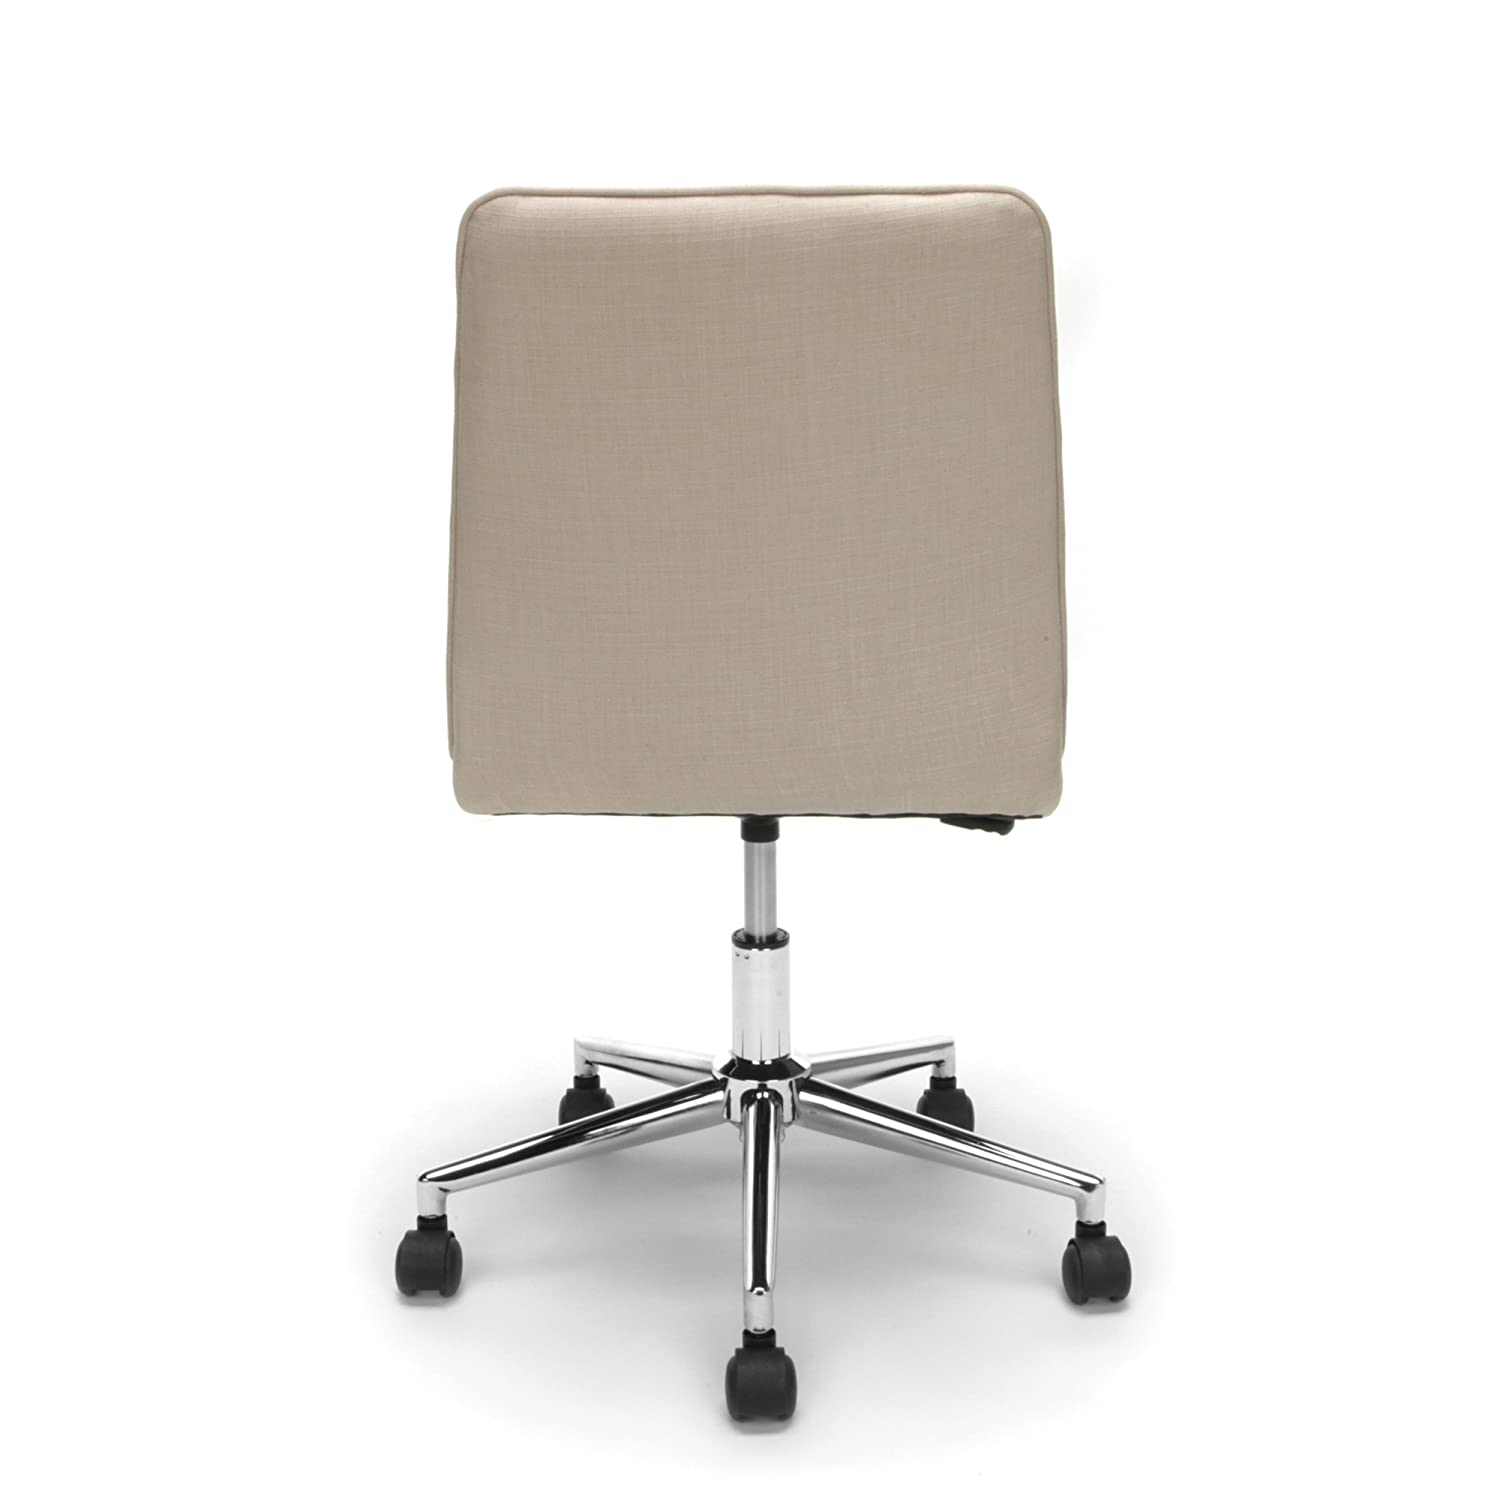 Black Essentials Leather Mid-Back Office Chair ESS-2080-BLK OFM Armless Leather Computer Chair